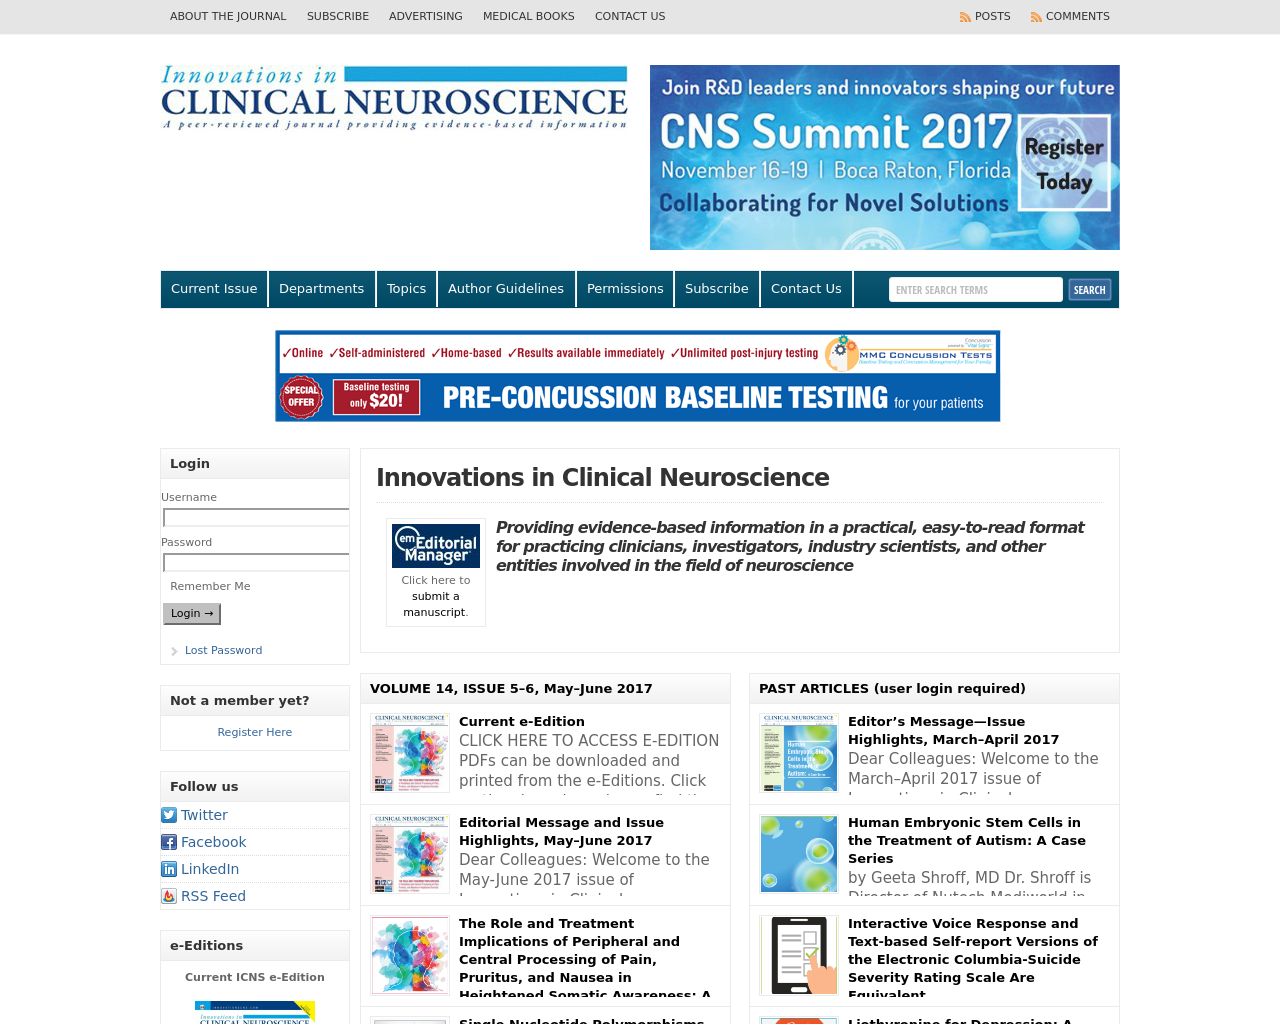 CLINICAL-NEUROSCIENCE-Advertising-Reviews-Pricing